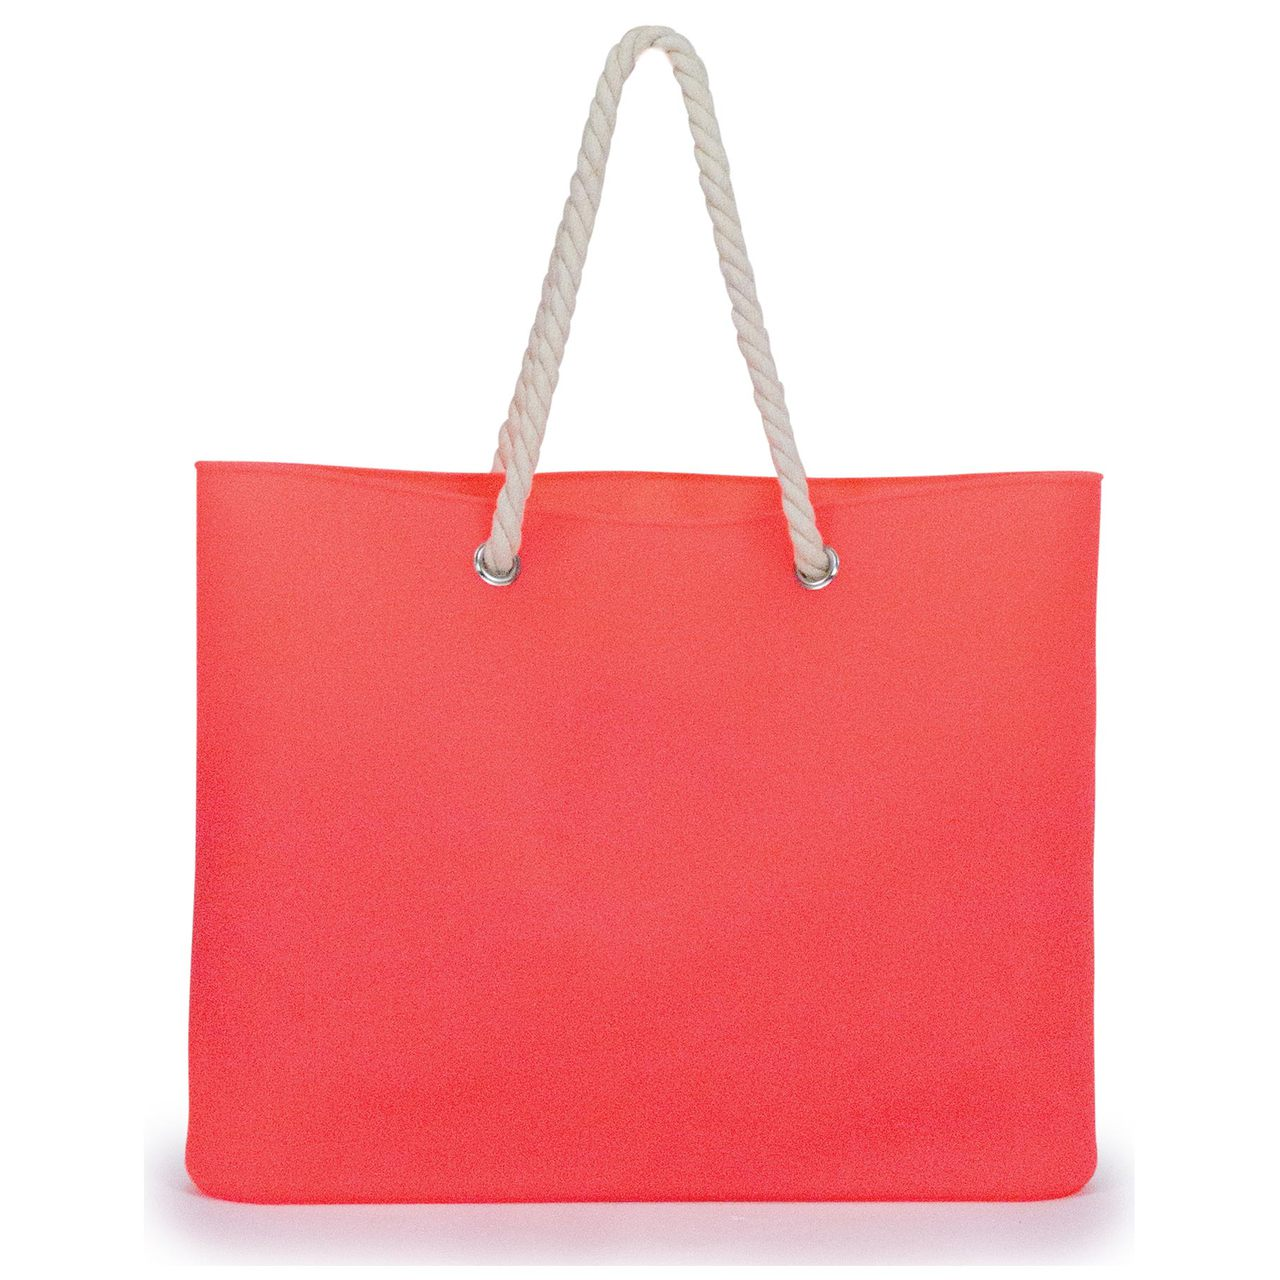 Jelly Tote Silicone in Red | The Design Gift Shop